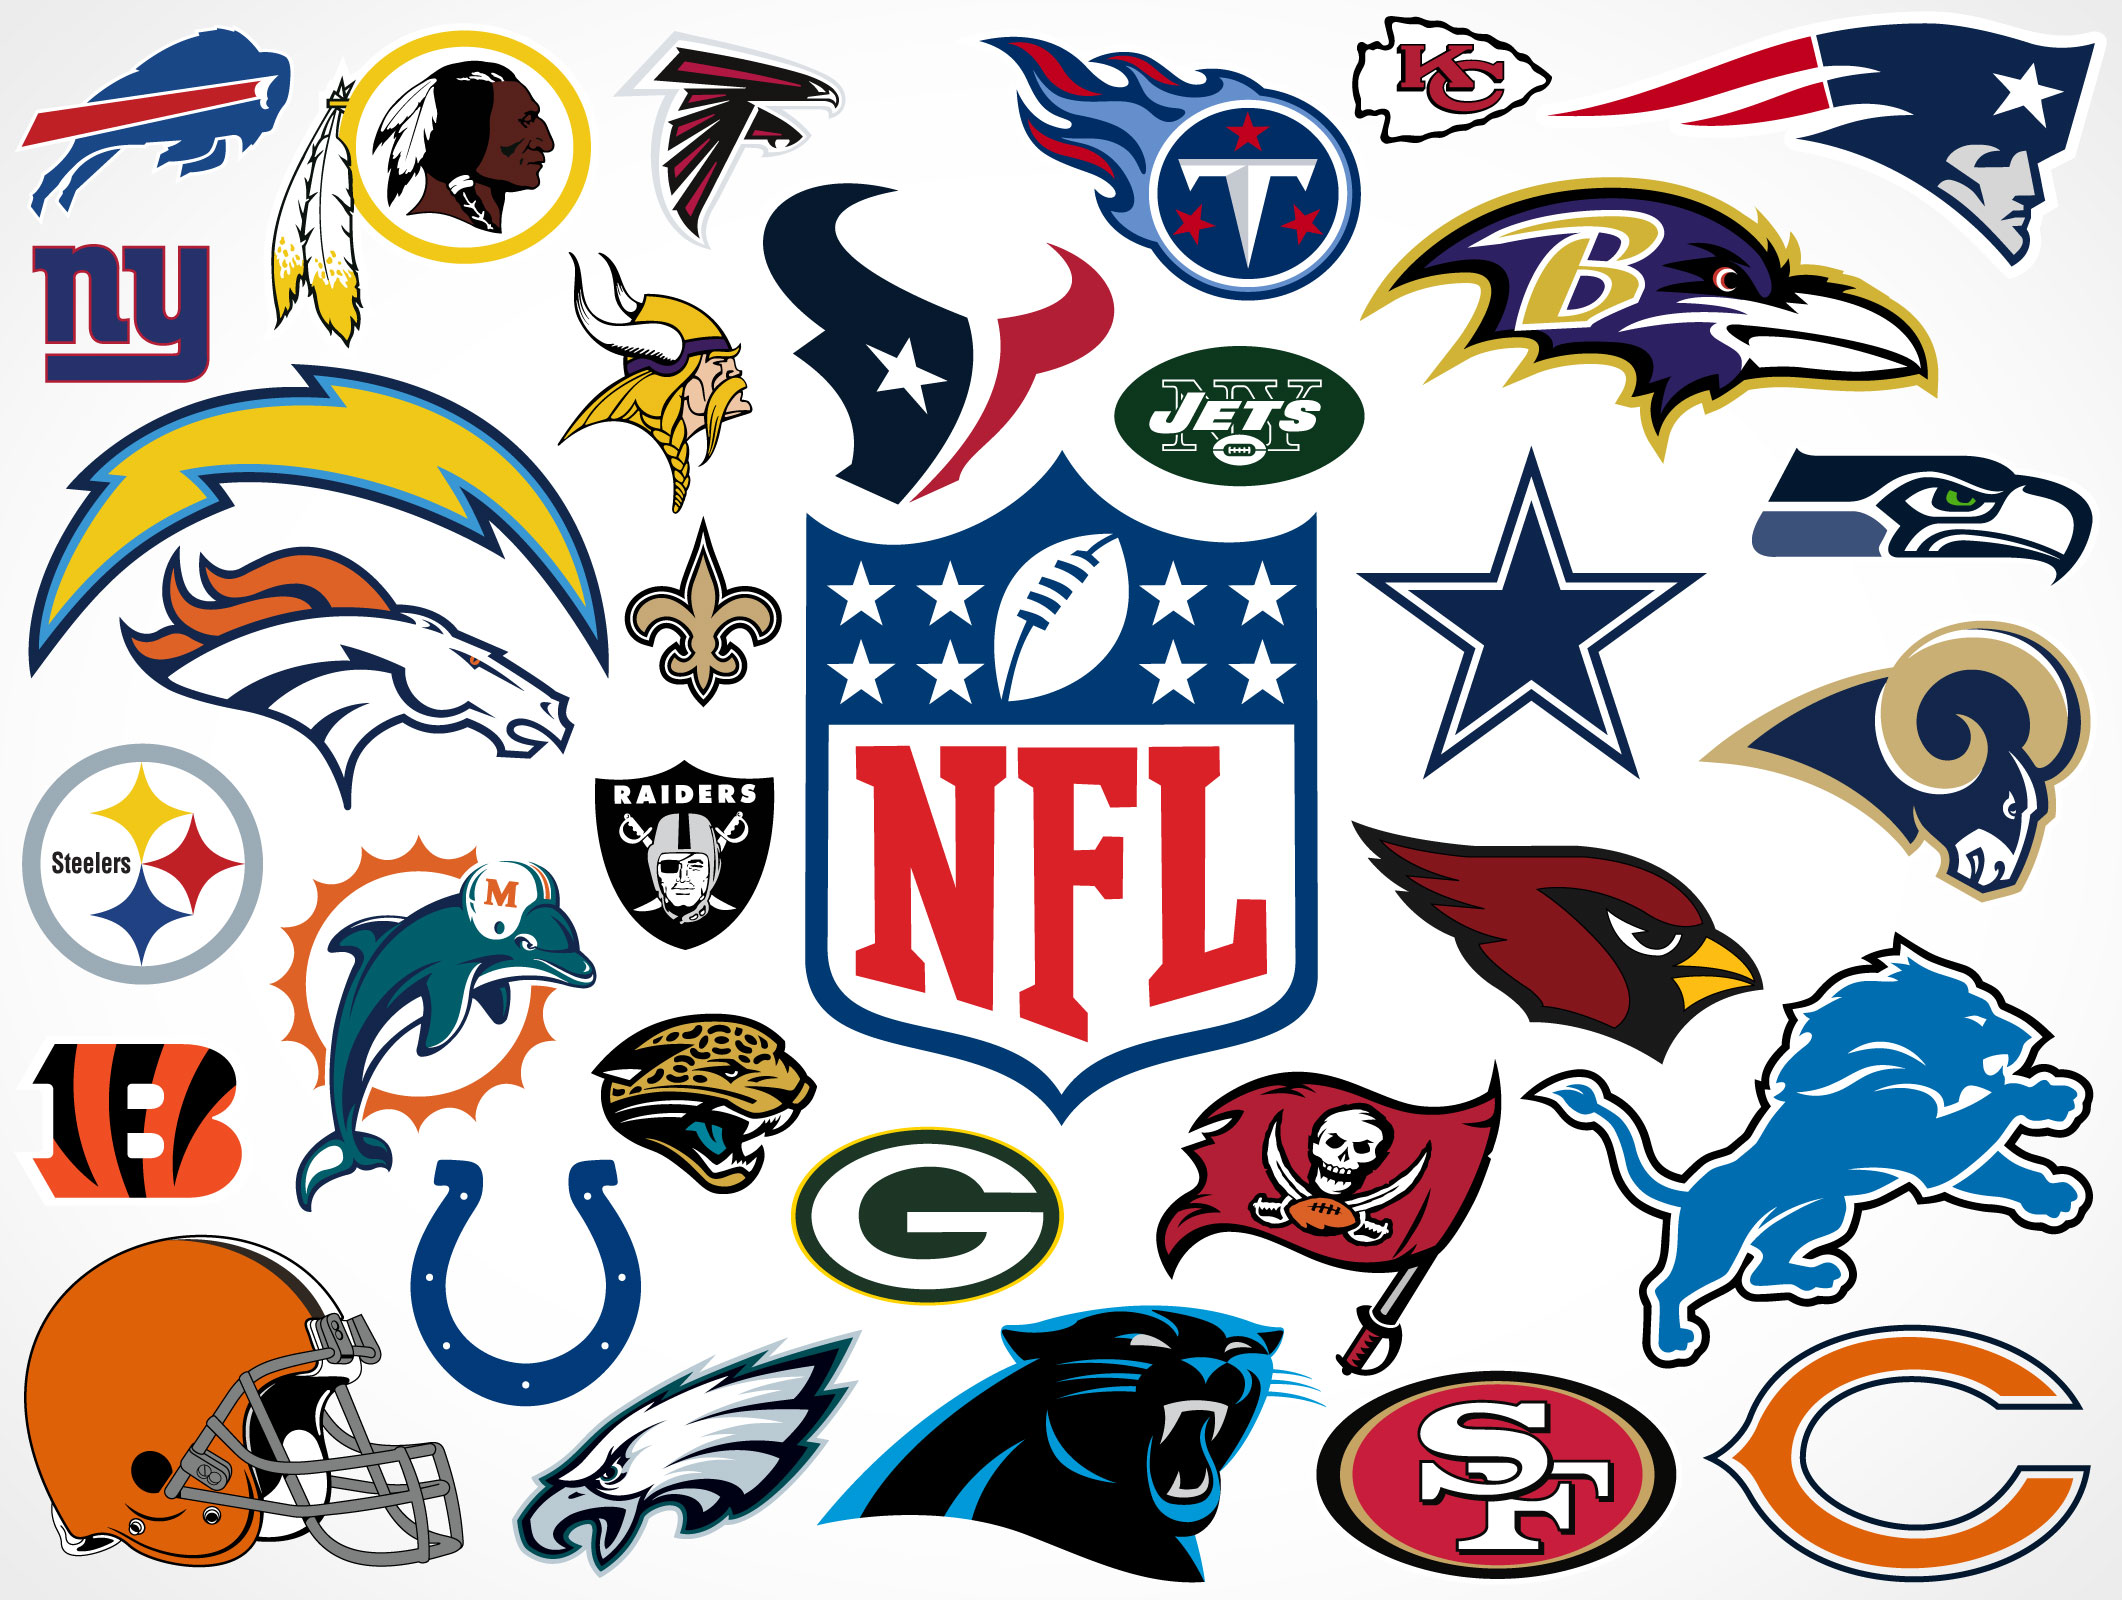 15 Thursday NFL Logo Vector Images